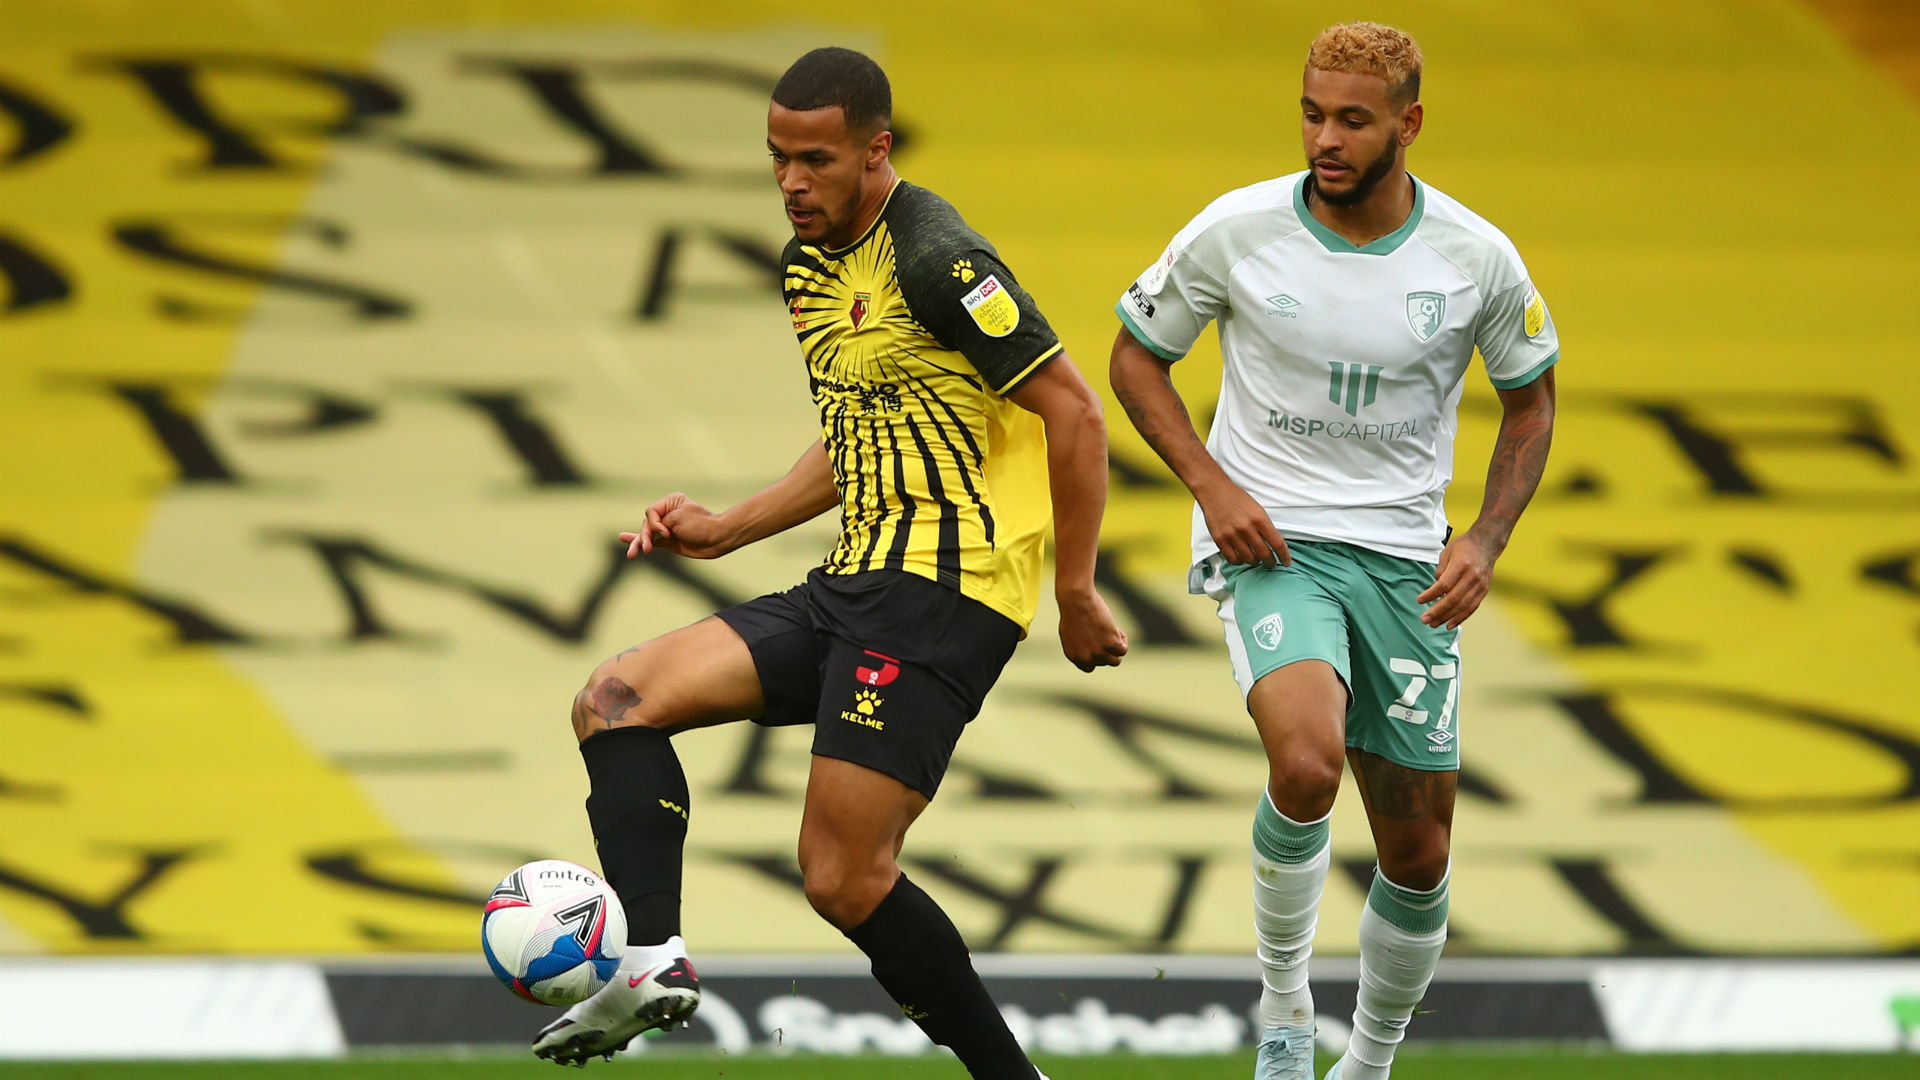 Watford will show character against Coventry City – Troost-Ekong